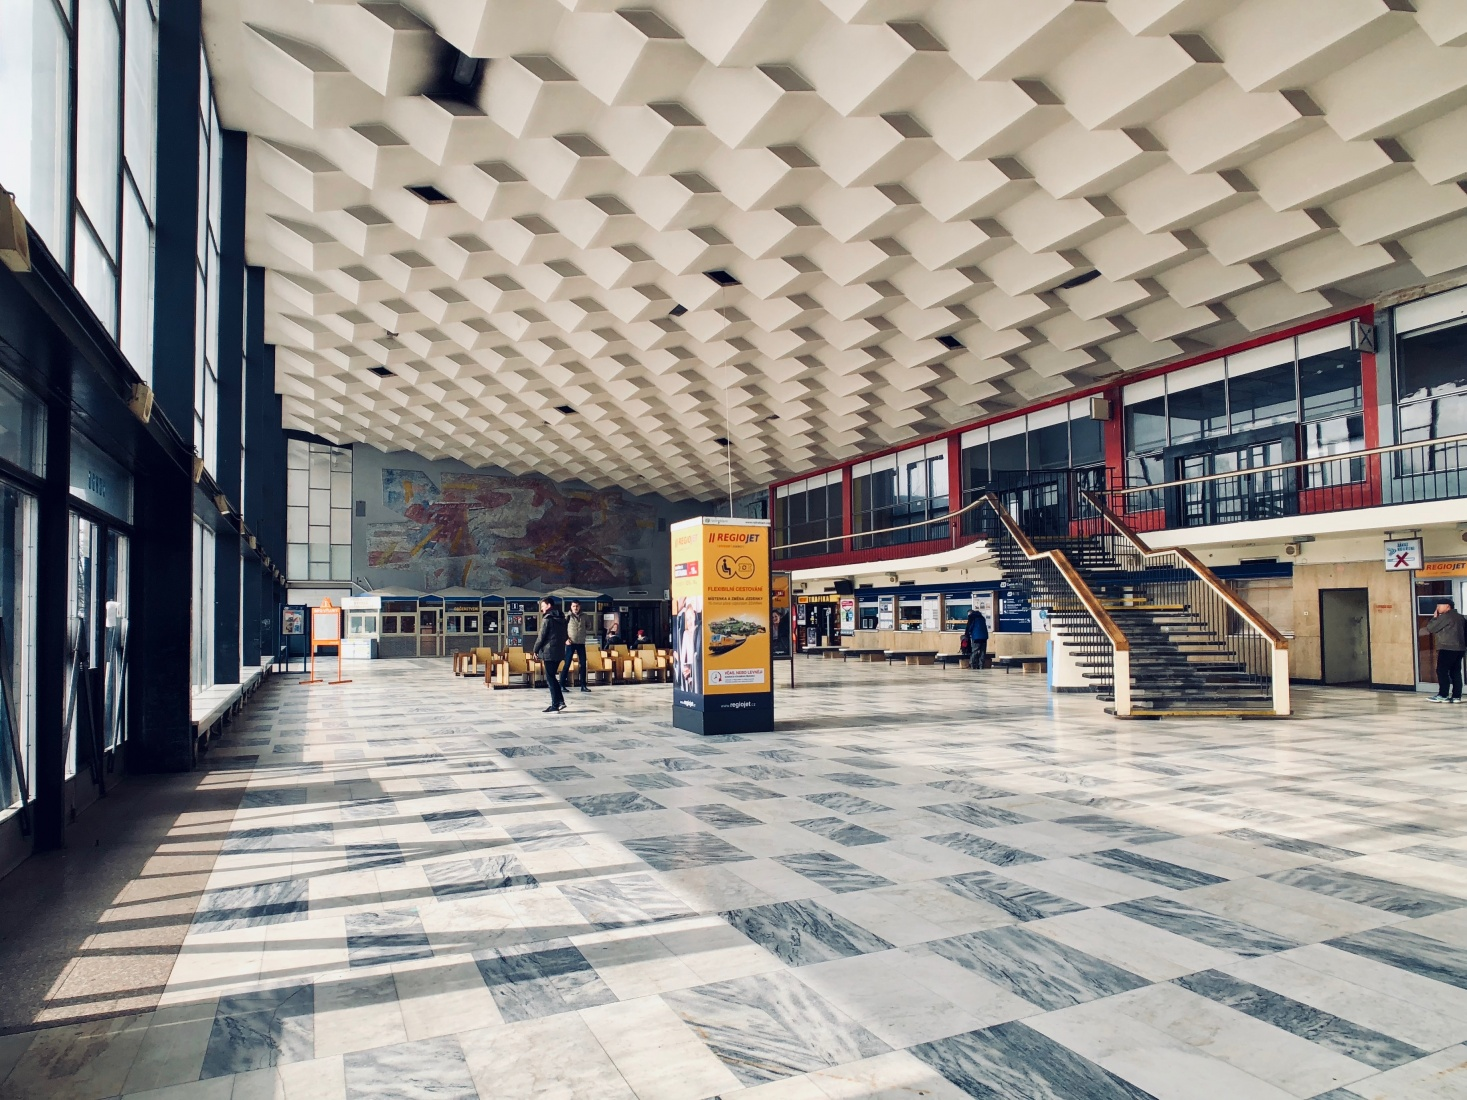 The main lobby at the train station as it appears today, with geometric patterns on the ceiling and floor, in the Czech-Silesian mining city of Havířov, Czech Republic.